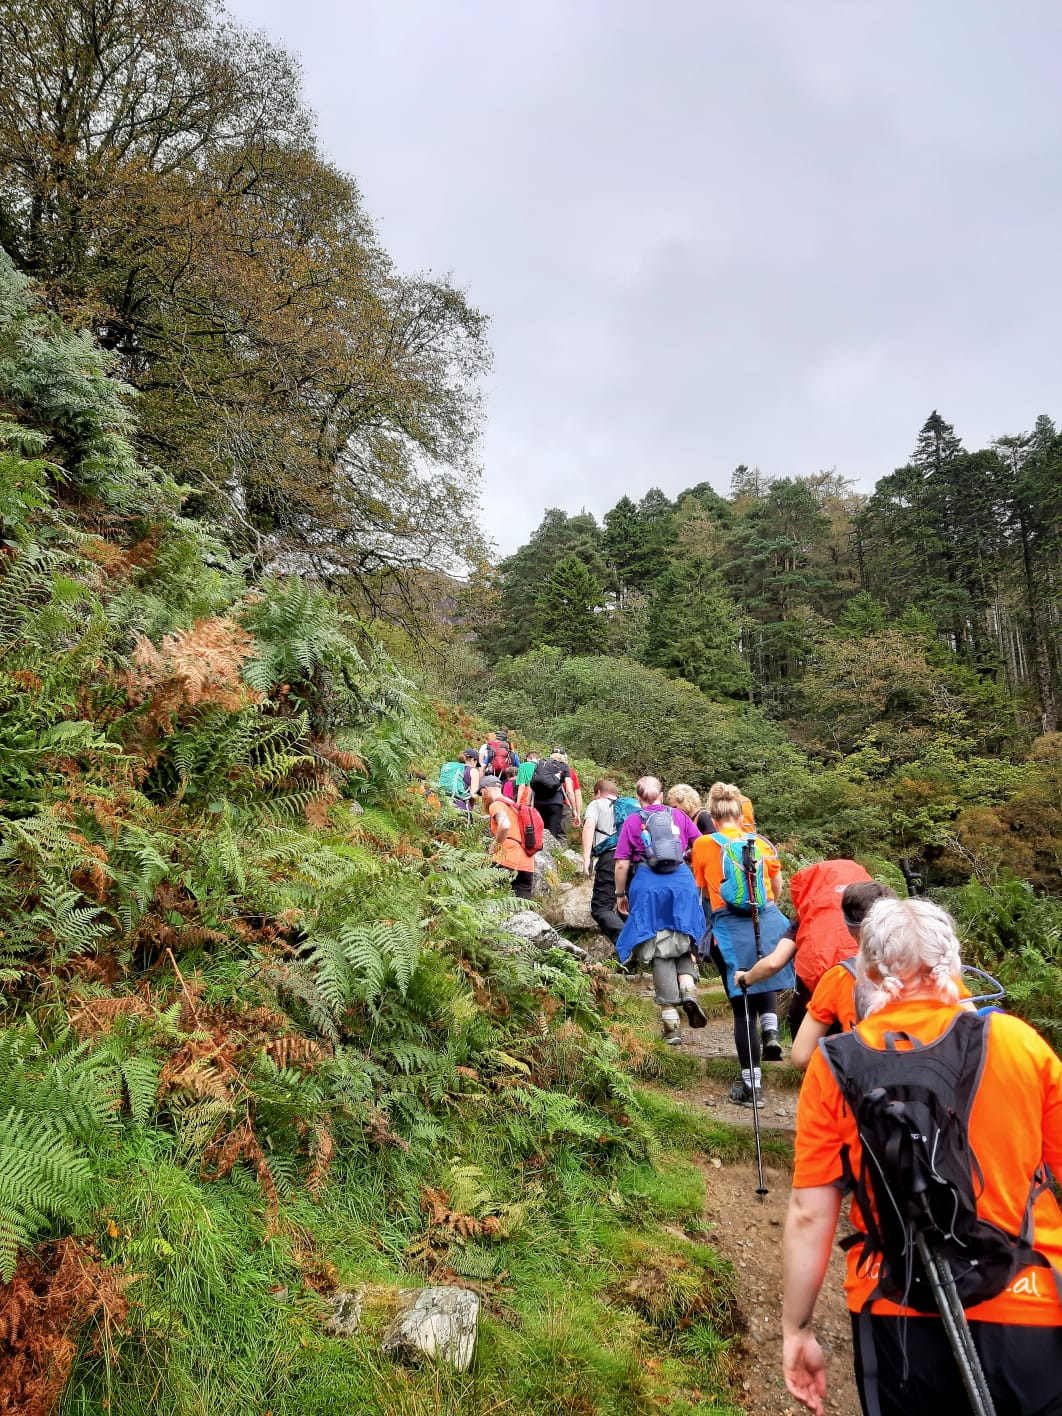 Charity group on an adventure challenge